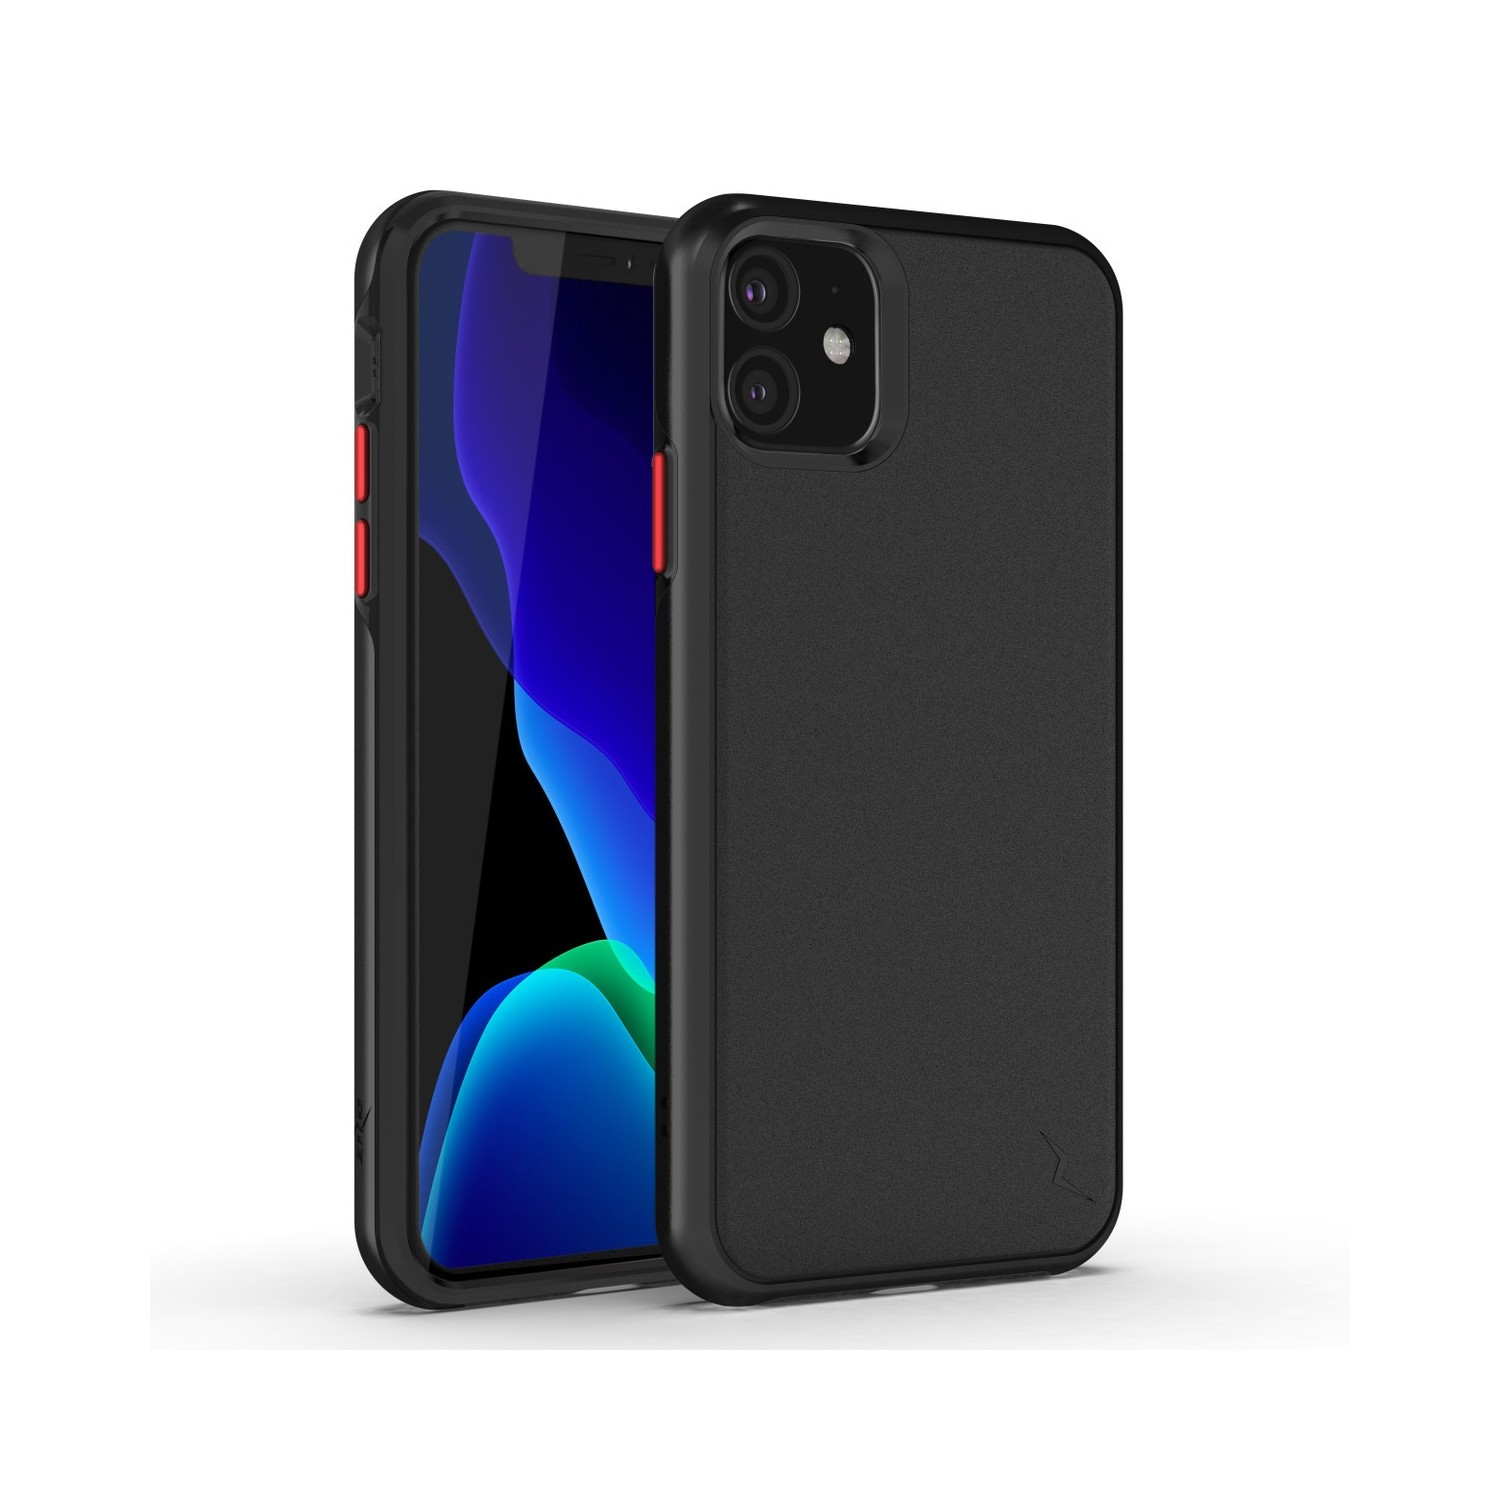 Case - Zizo® Division Case for iPhone 11 Black